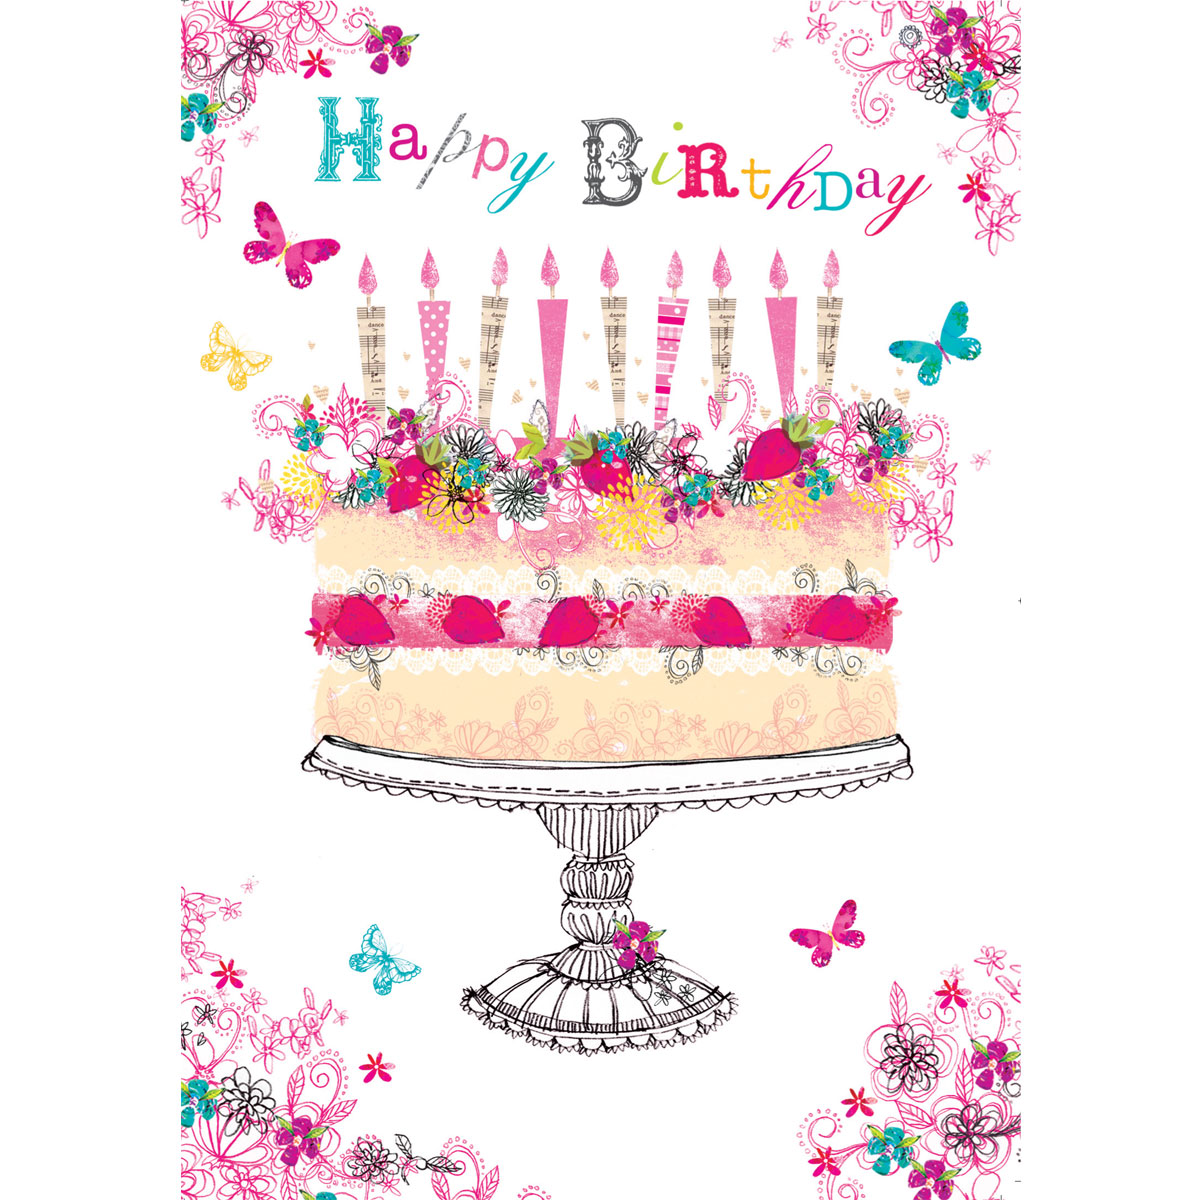 birthday greetings images pictures ; 71550